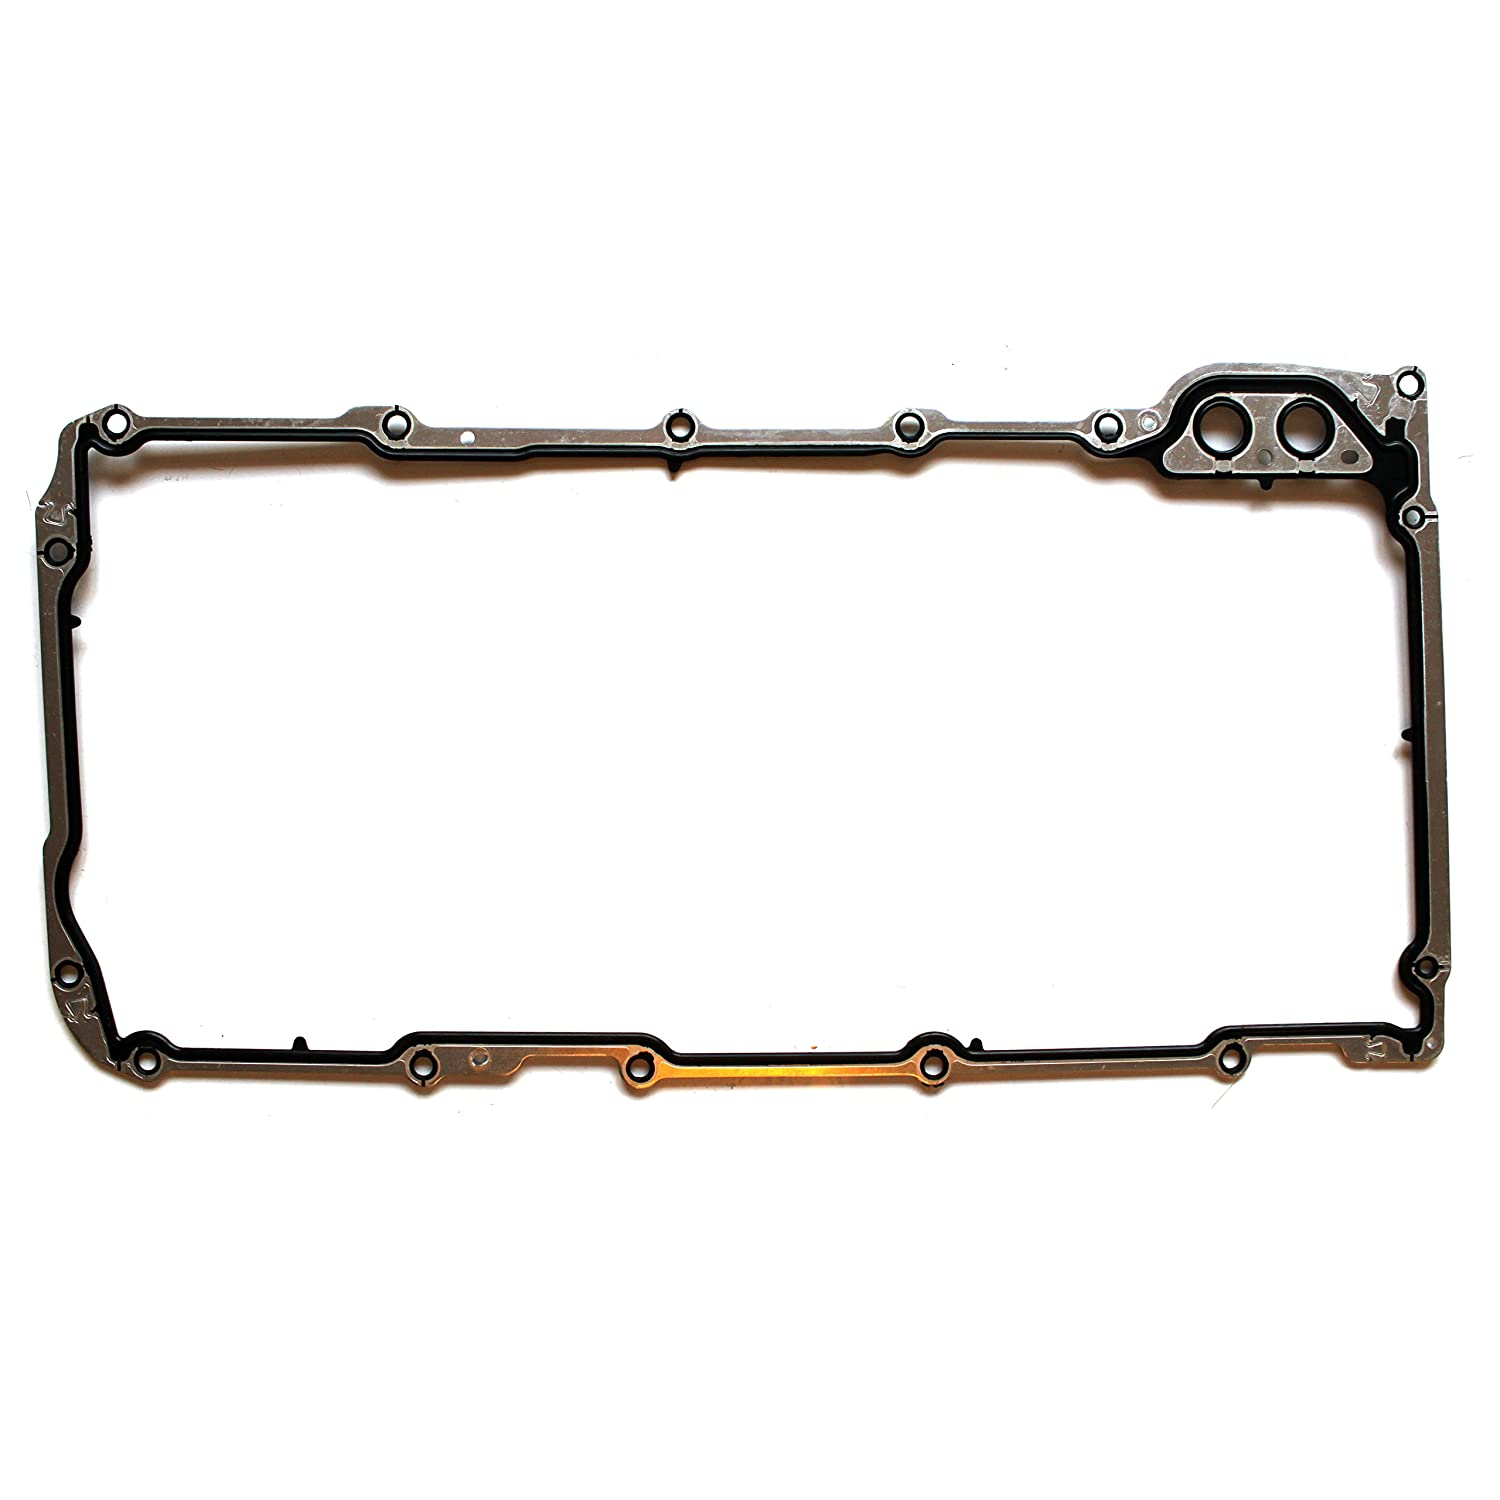 Oil ECCPP Replacement for Oil Pan Gasket Set for 1997-2015 ...